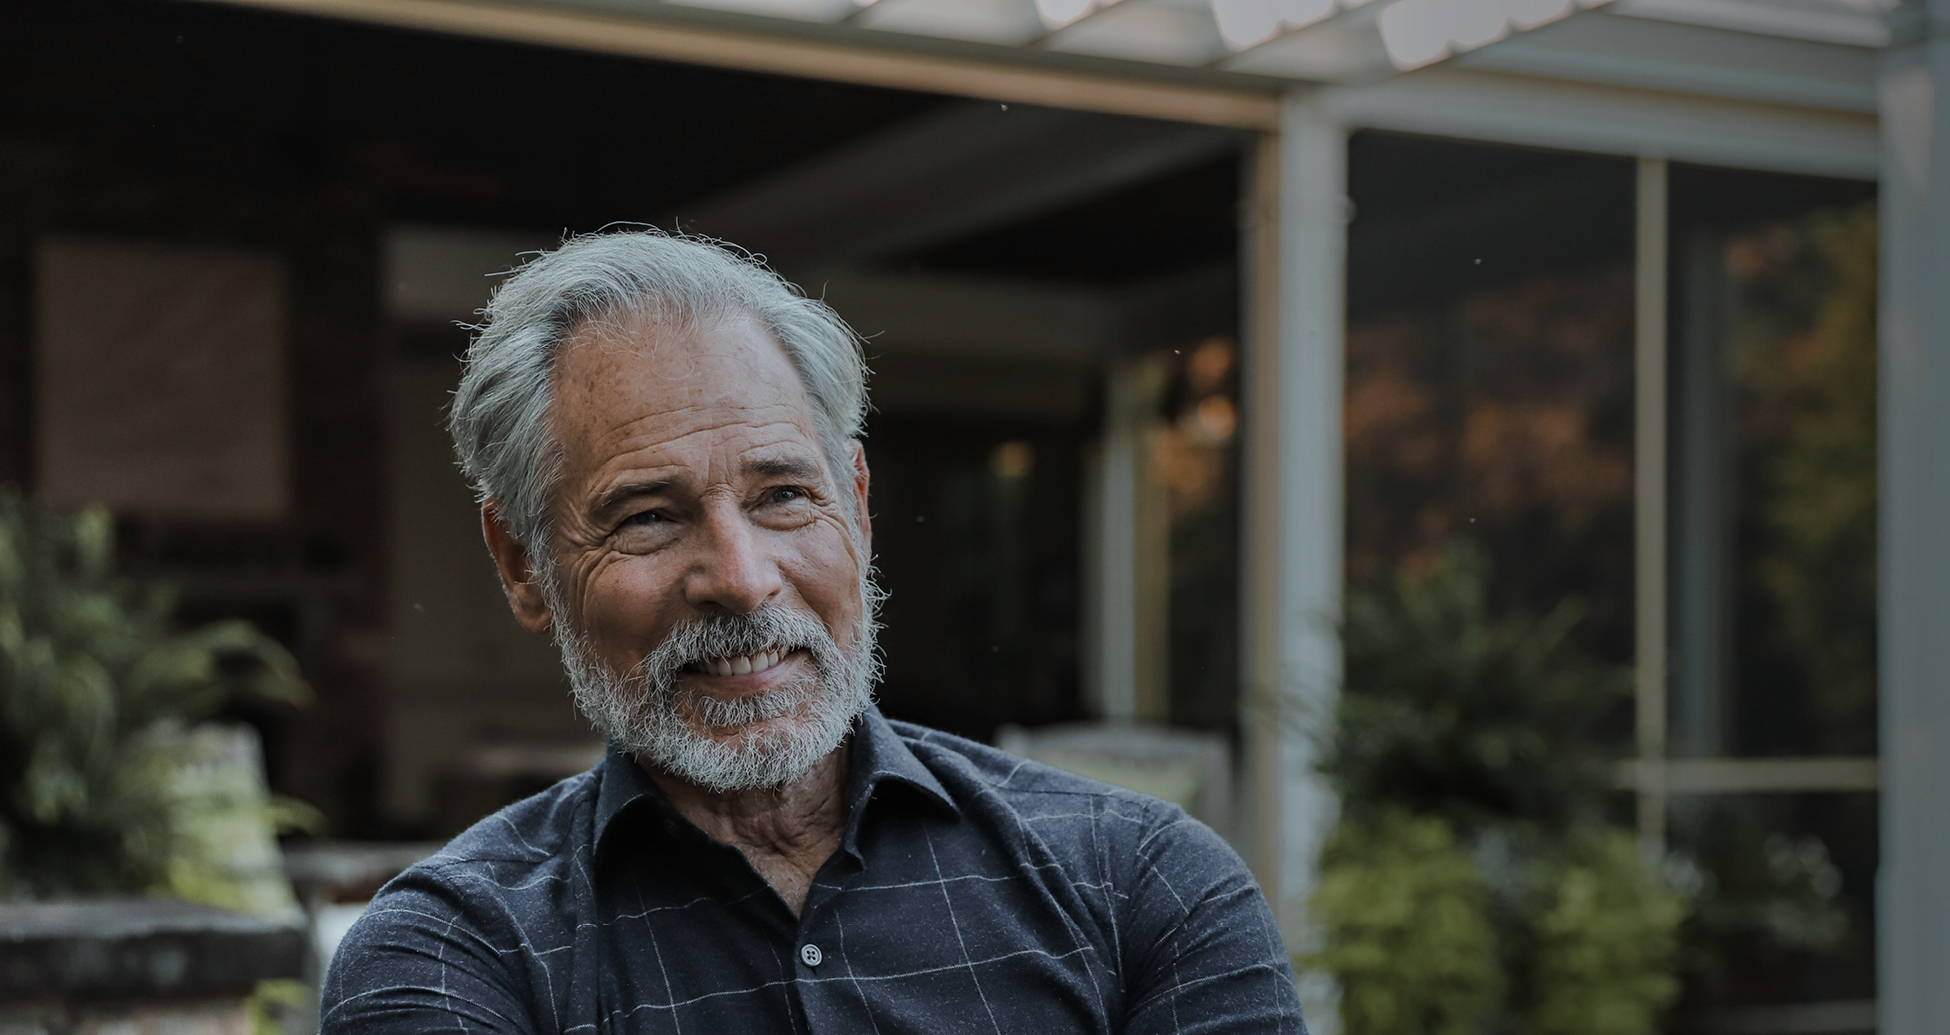 An older man wearing a Ledbury gray and white casual shirt outdoors.